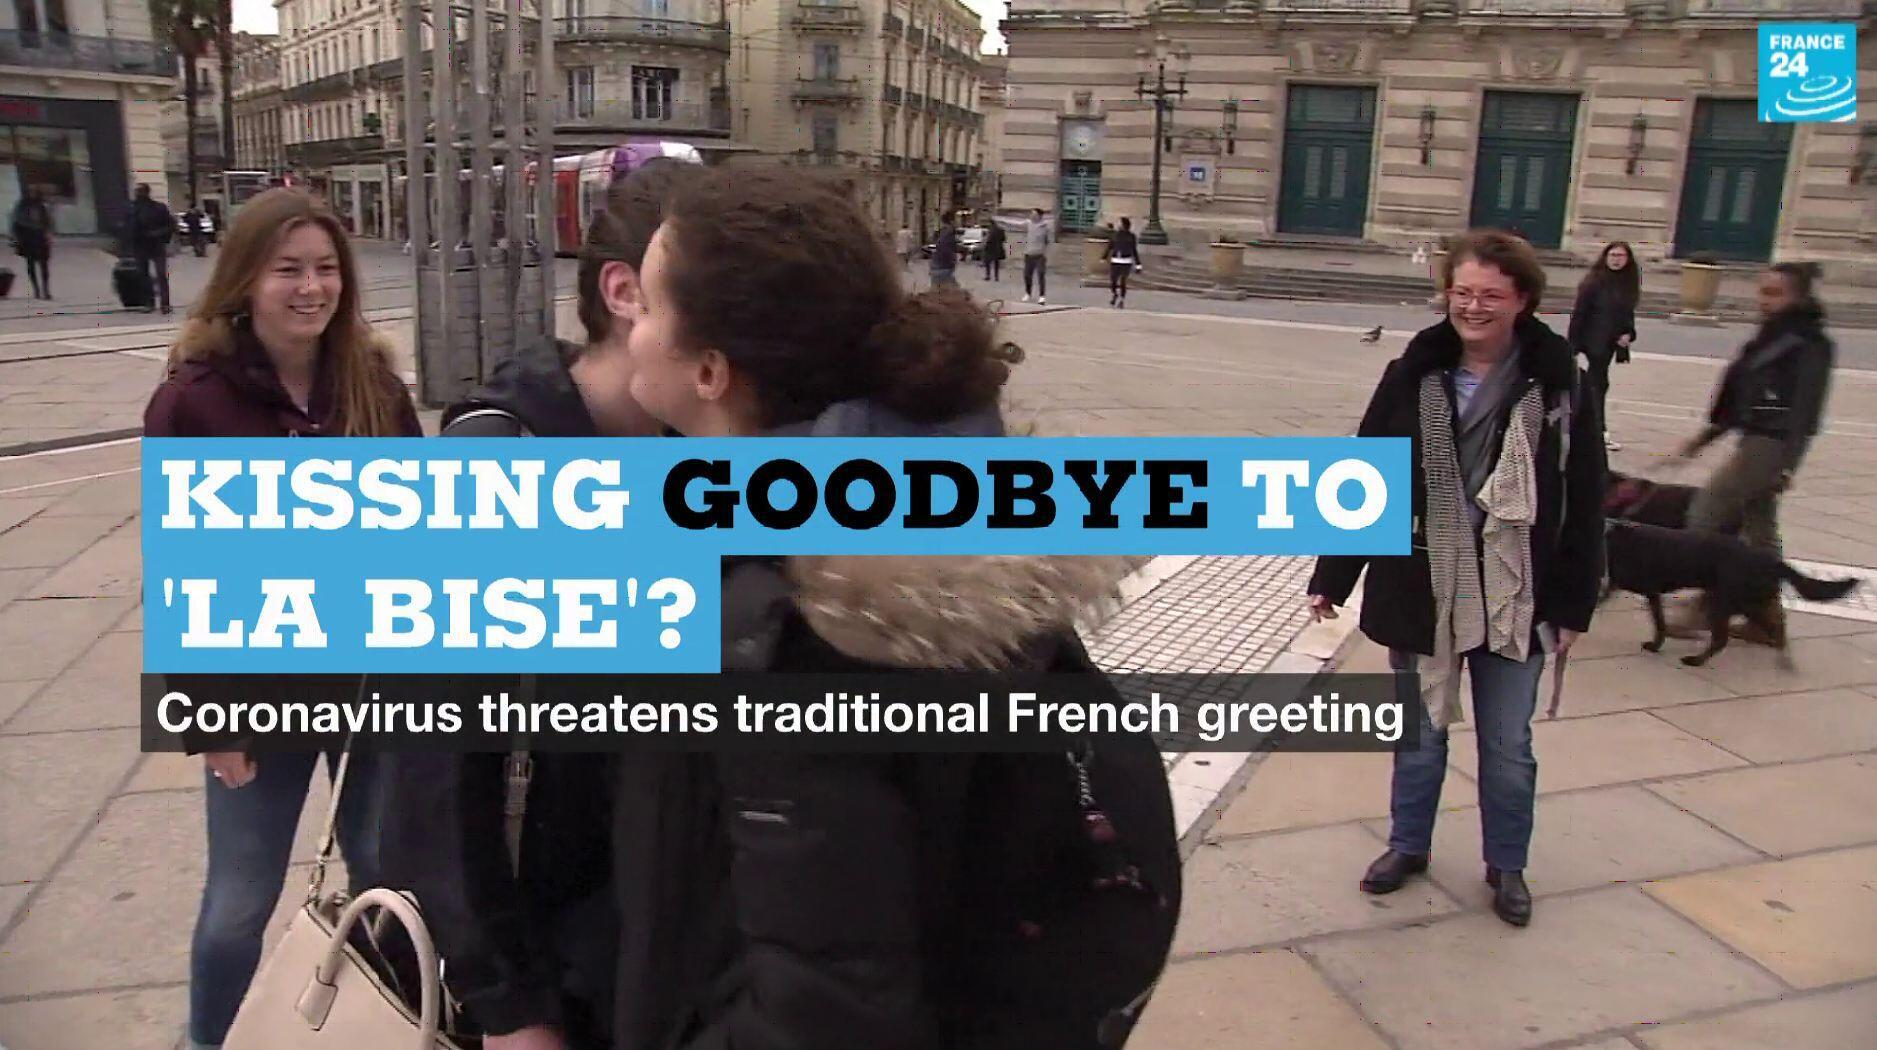 French government health officials have advised against greeting people with a kiss amid the coronavirus outbreak.